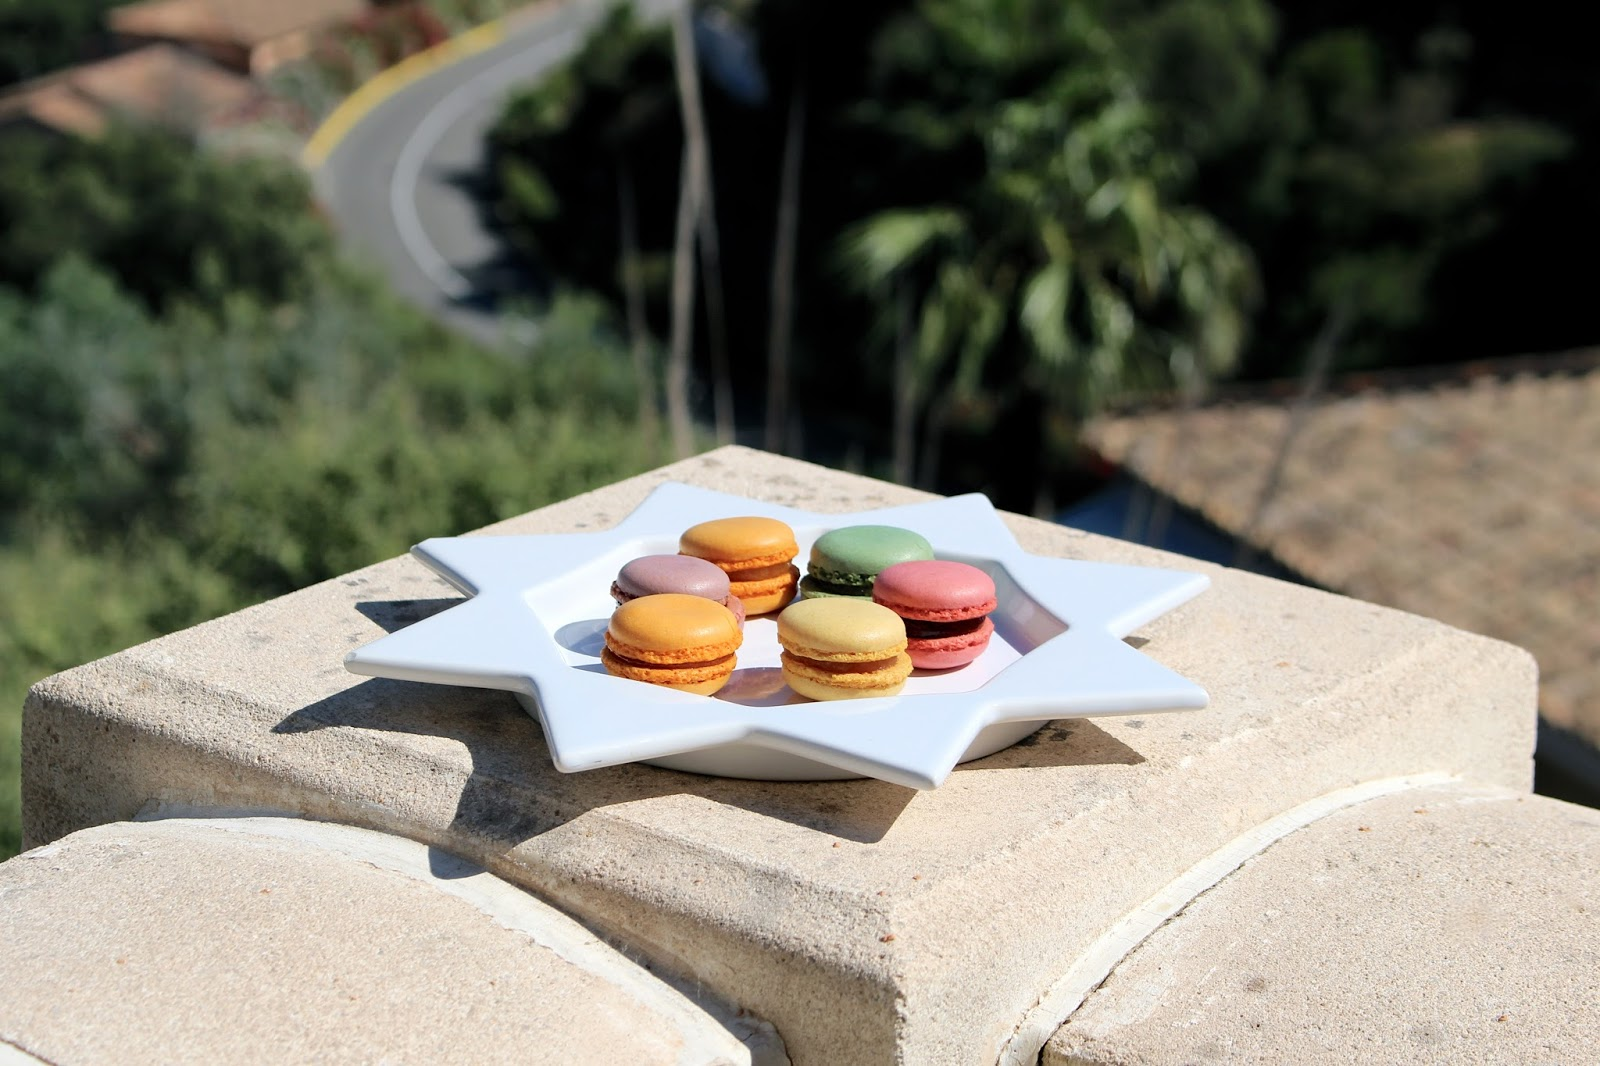 A plate of pretty and colourful macarons